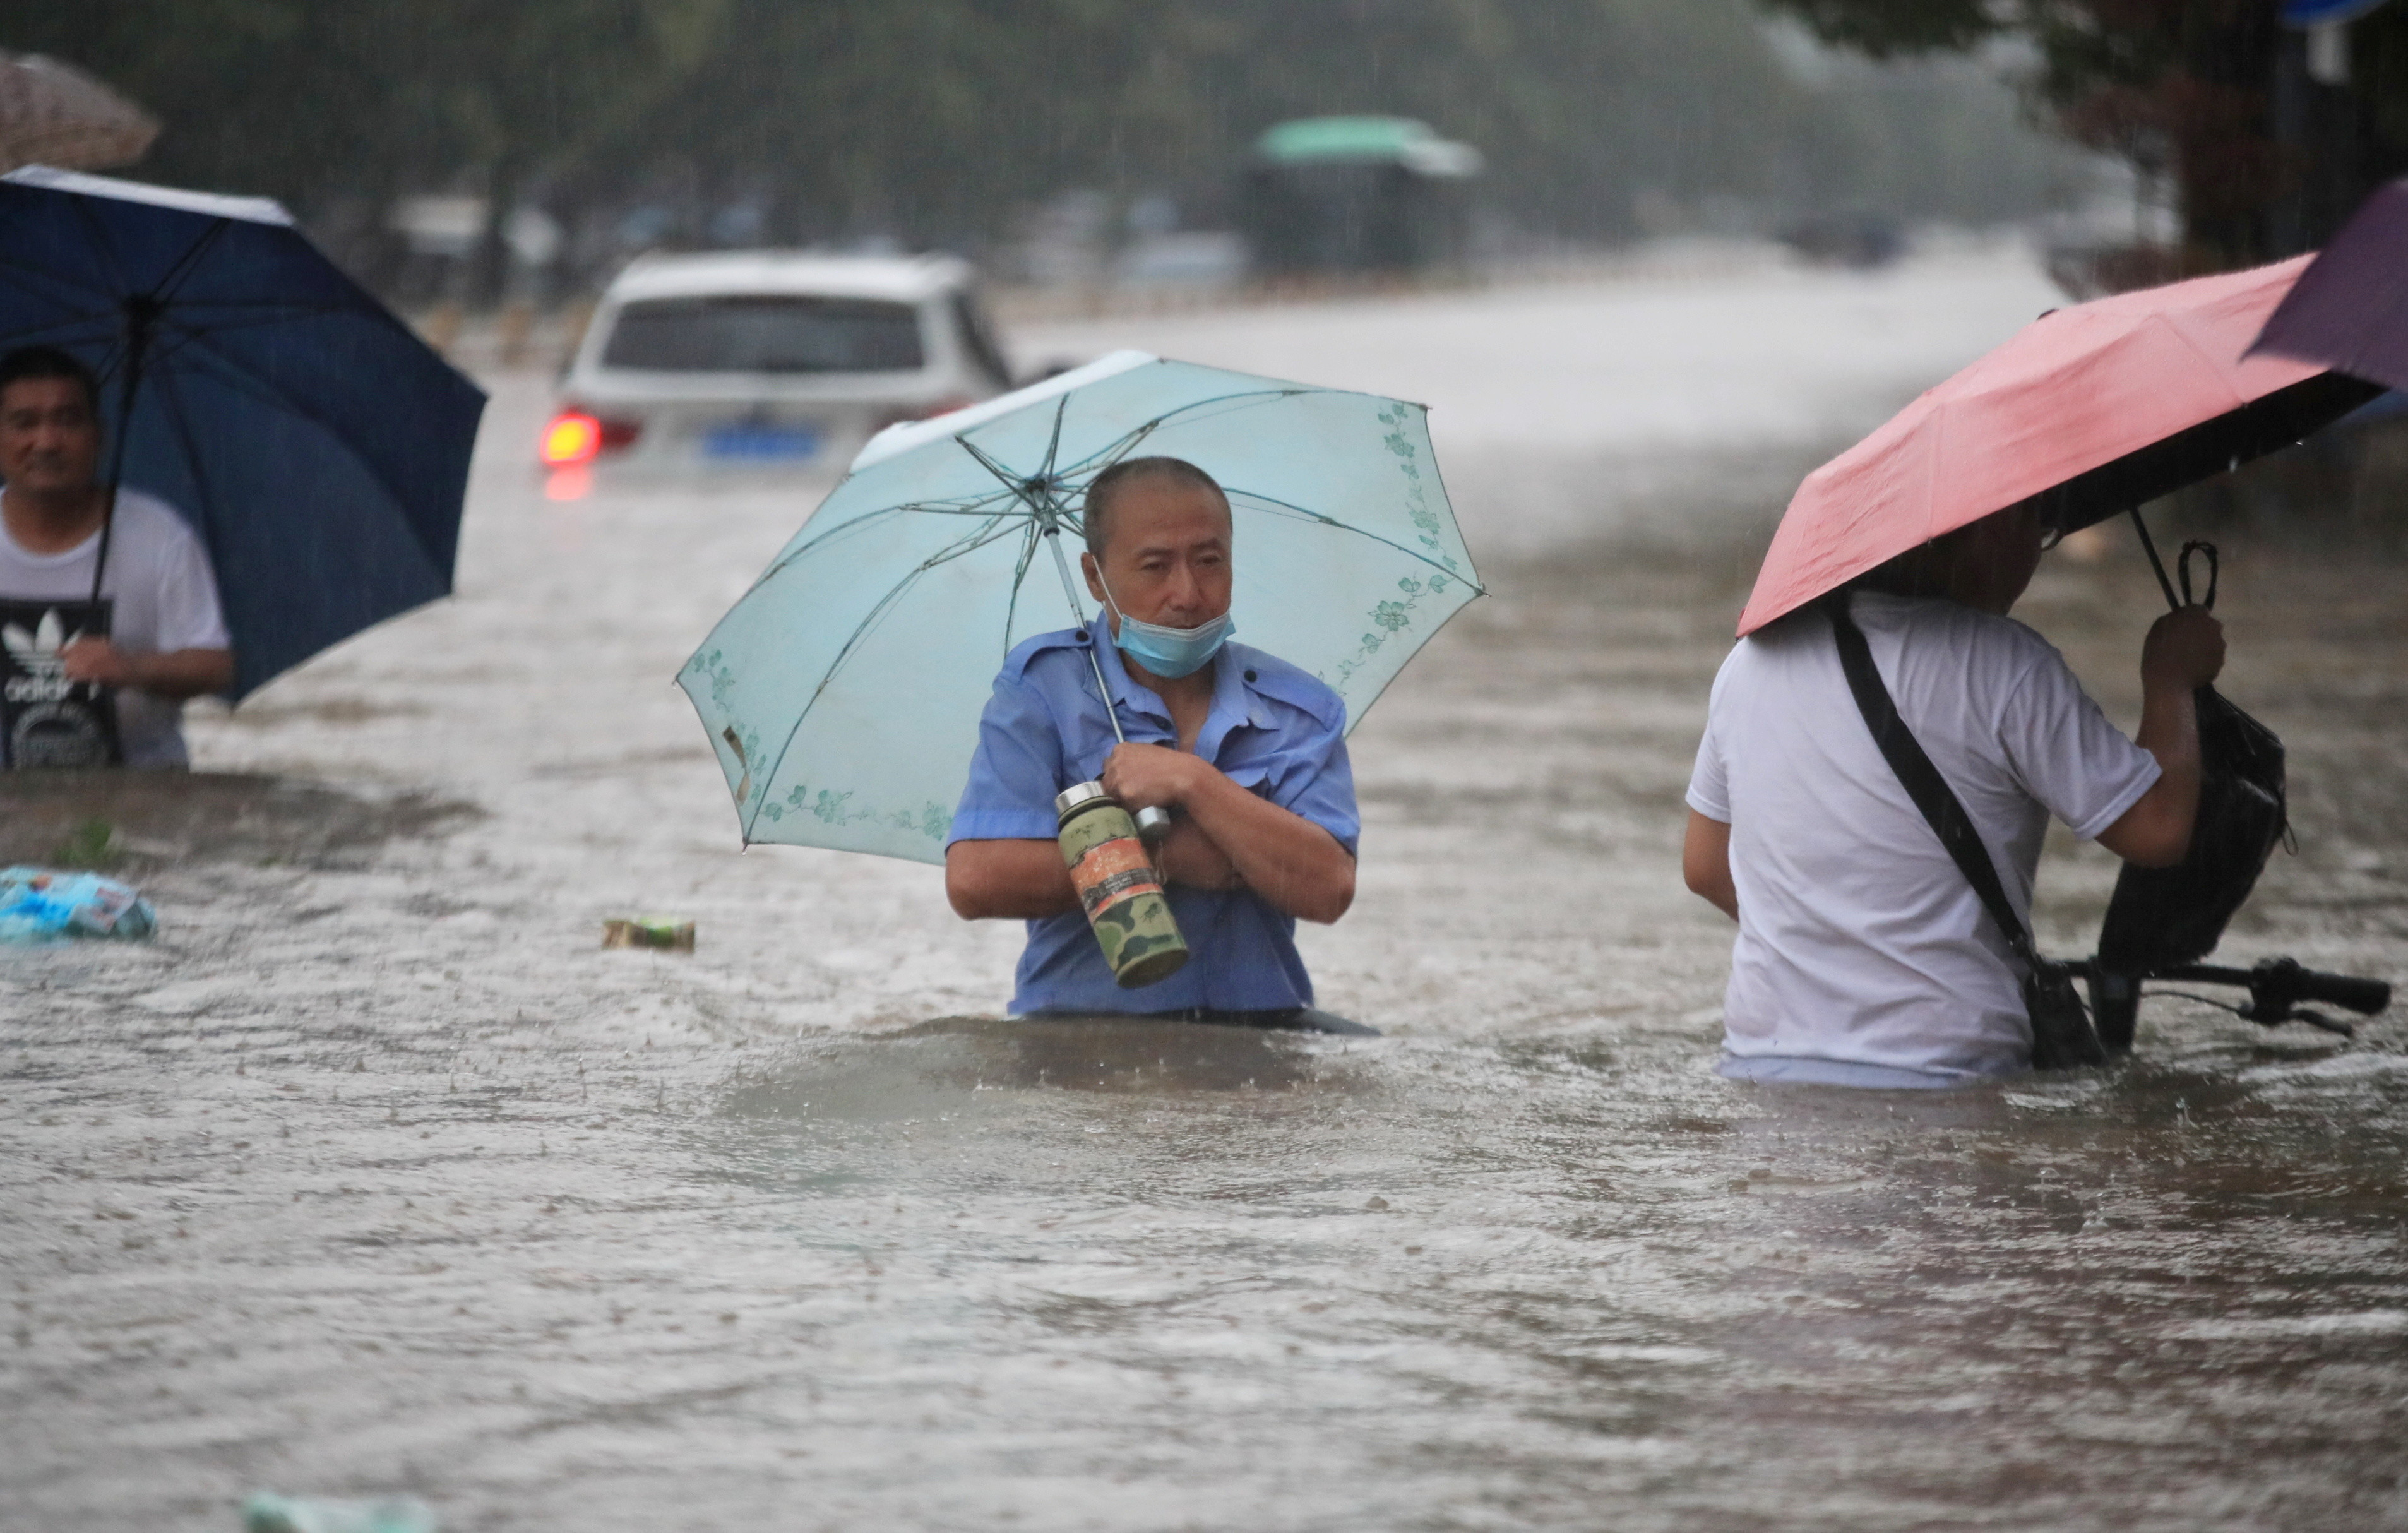 Residents wade through floodwaters on a flooded road amid heavy rainfall in Zhengzhou, Henan province